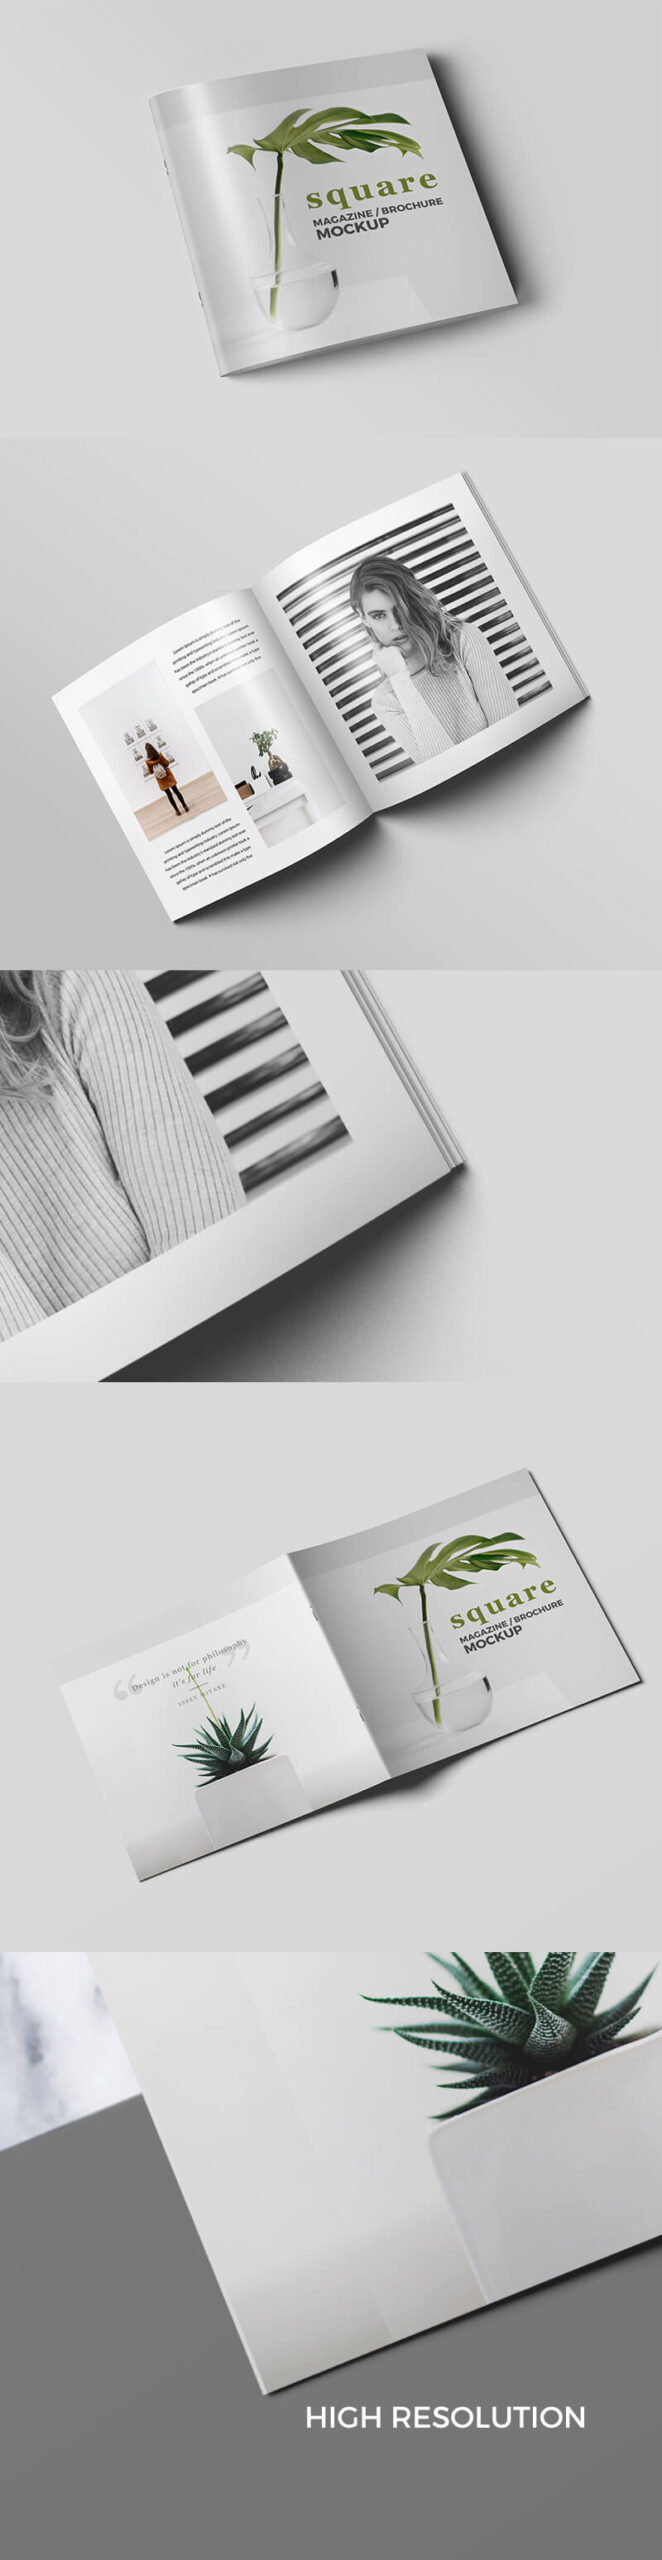 Free Square Magazine Brochure Mockup PSD Template1